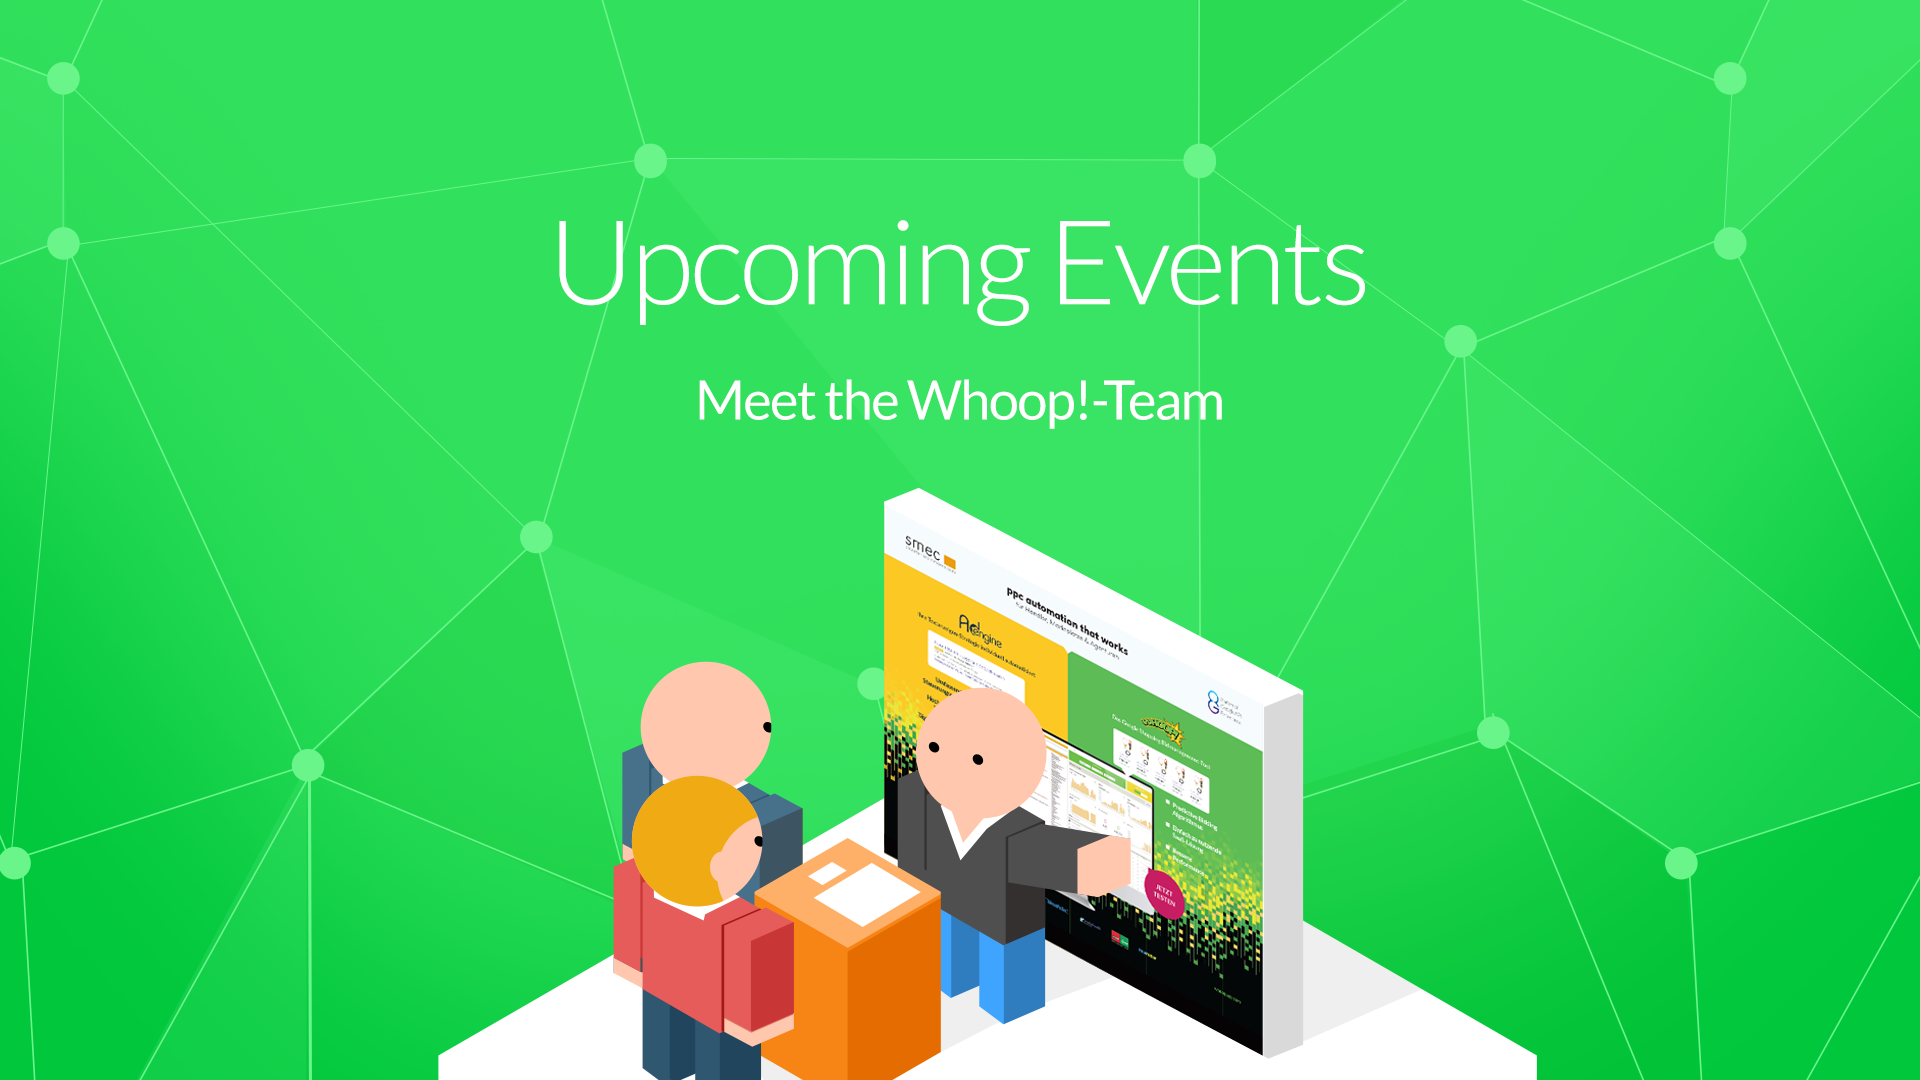 Meet us at our Upcoming Events